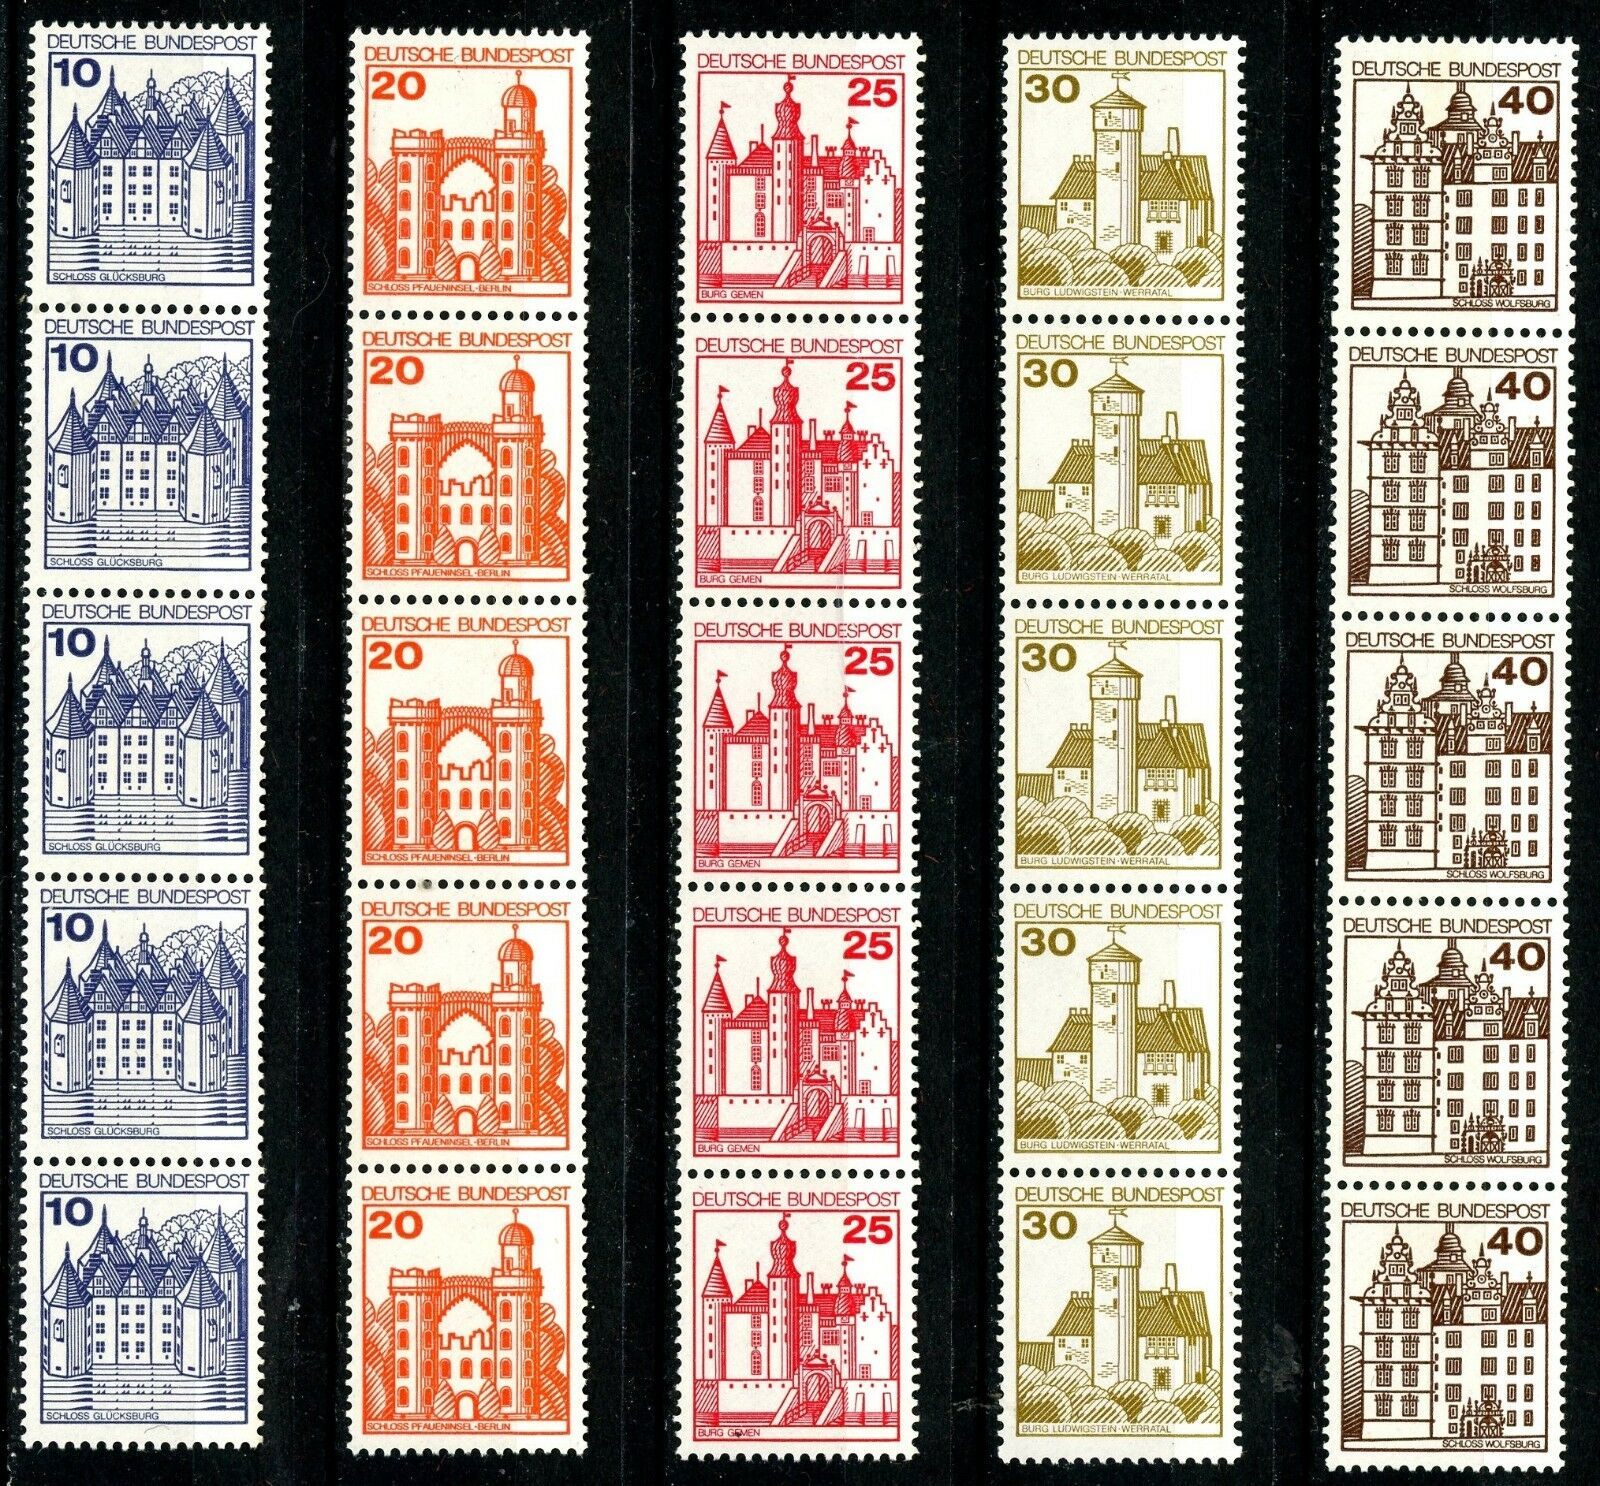 Castles 5 Coil Strips of 5 Matching Control Numbers MNH Scotts 1231 -1234 & 1309